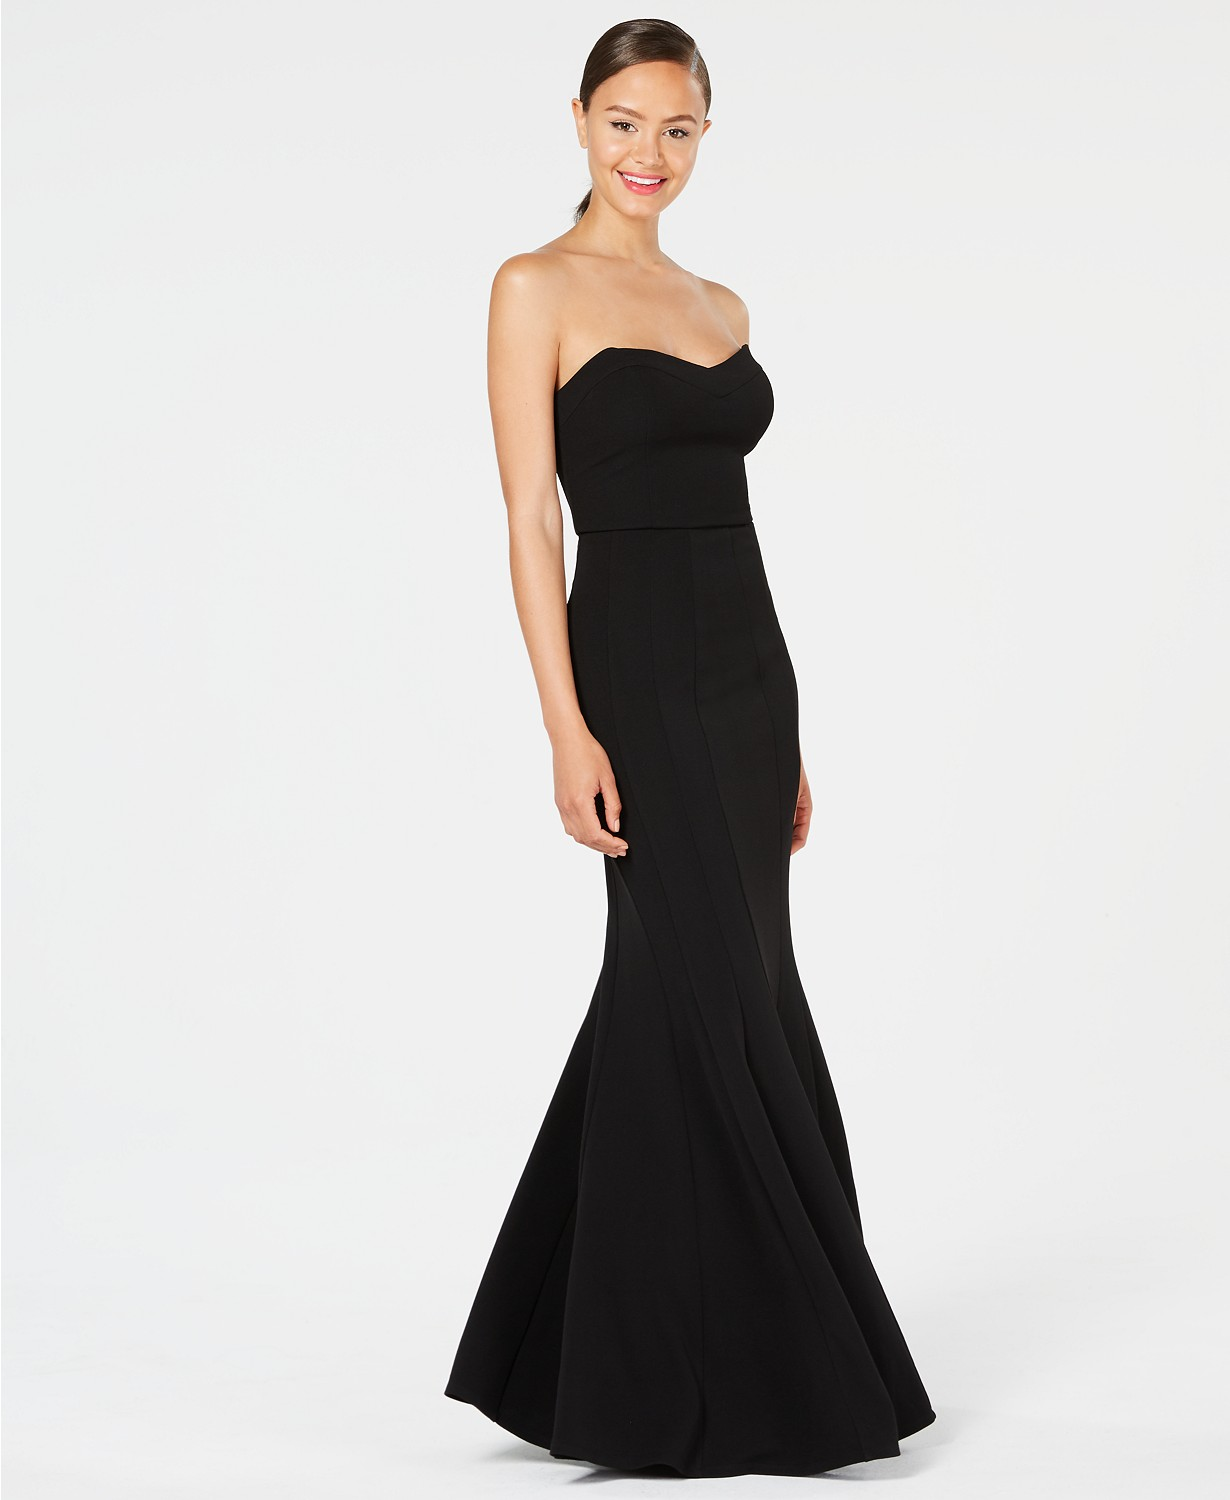 Homecoming Queen: 45 Dresses To Wow The Crowd For Under $150 – Plum ...